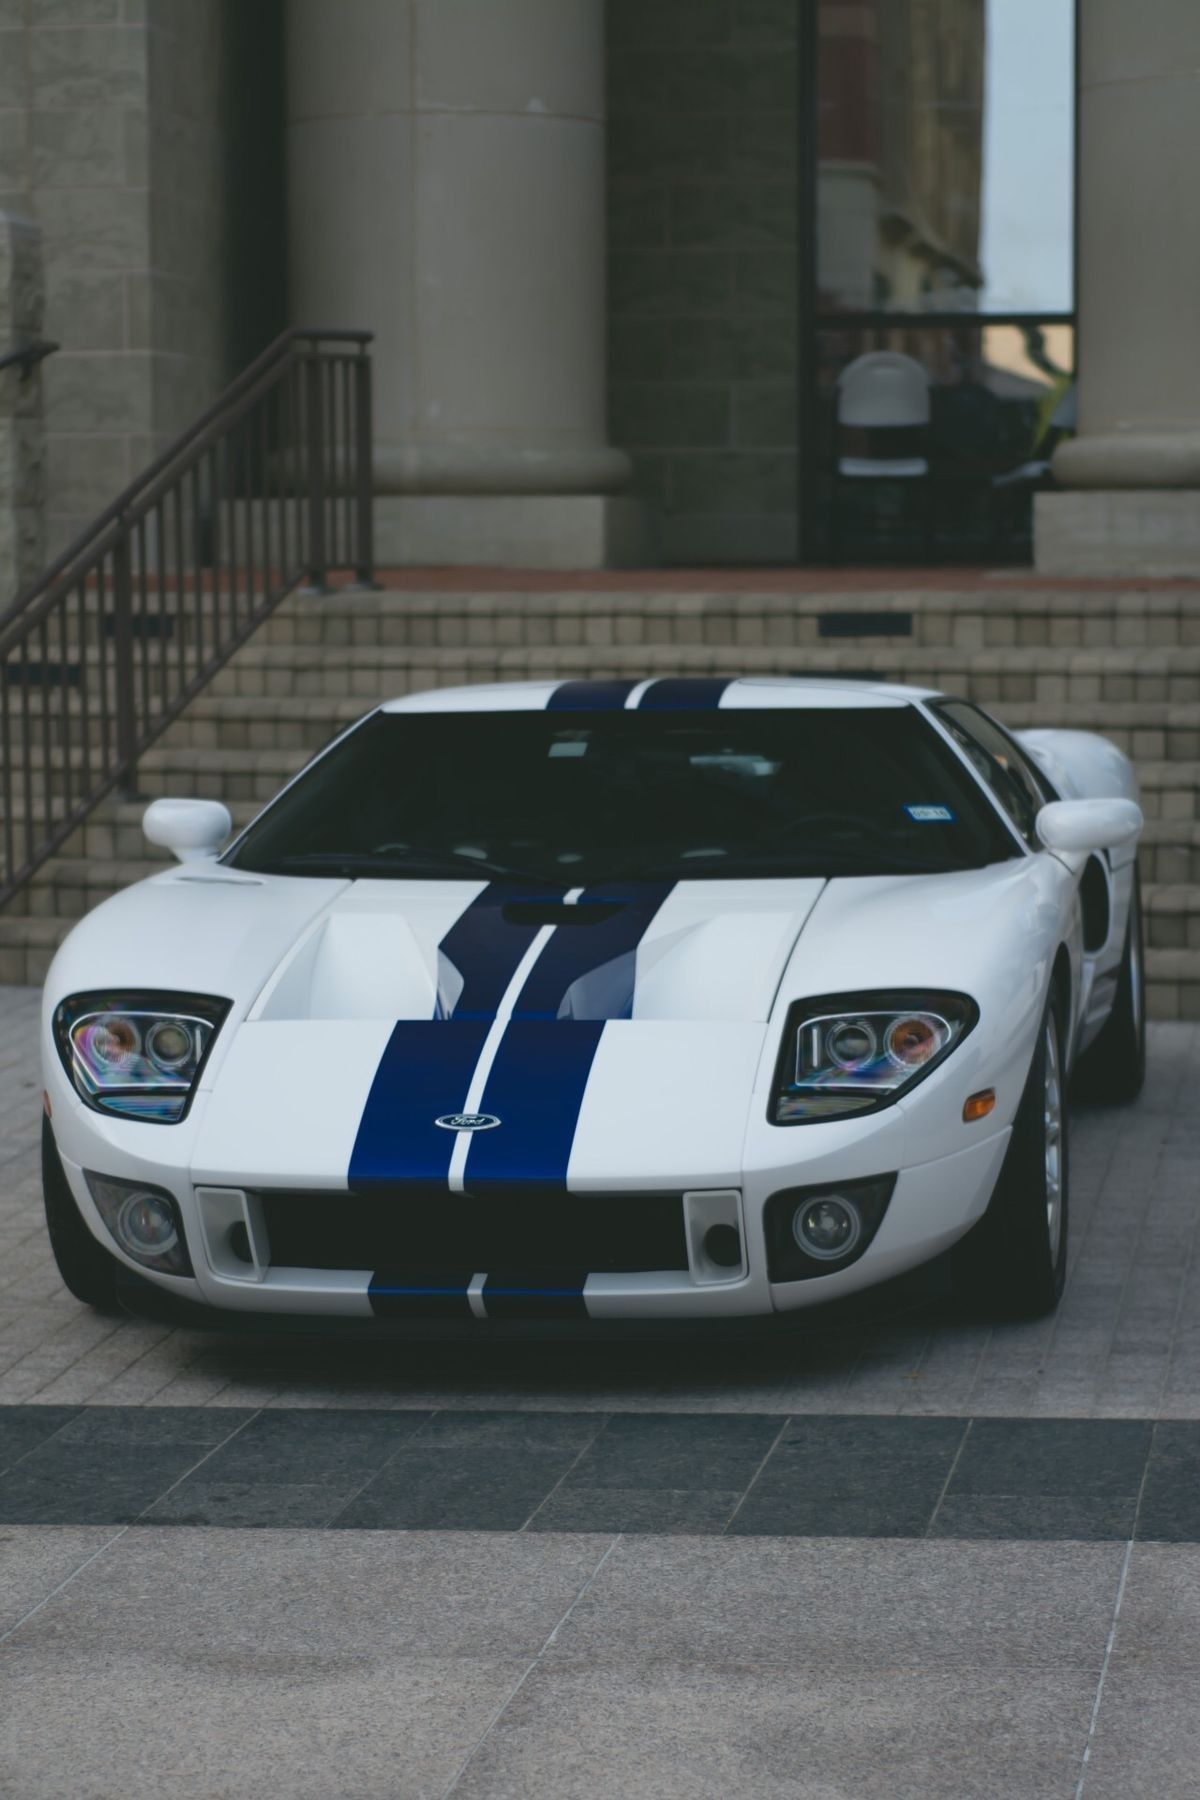 Pin By Naomii Rosales On On The Limit Men And Machines Ford Gt Ford Classic Cars Ford Gt40